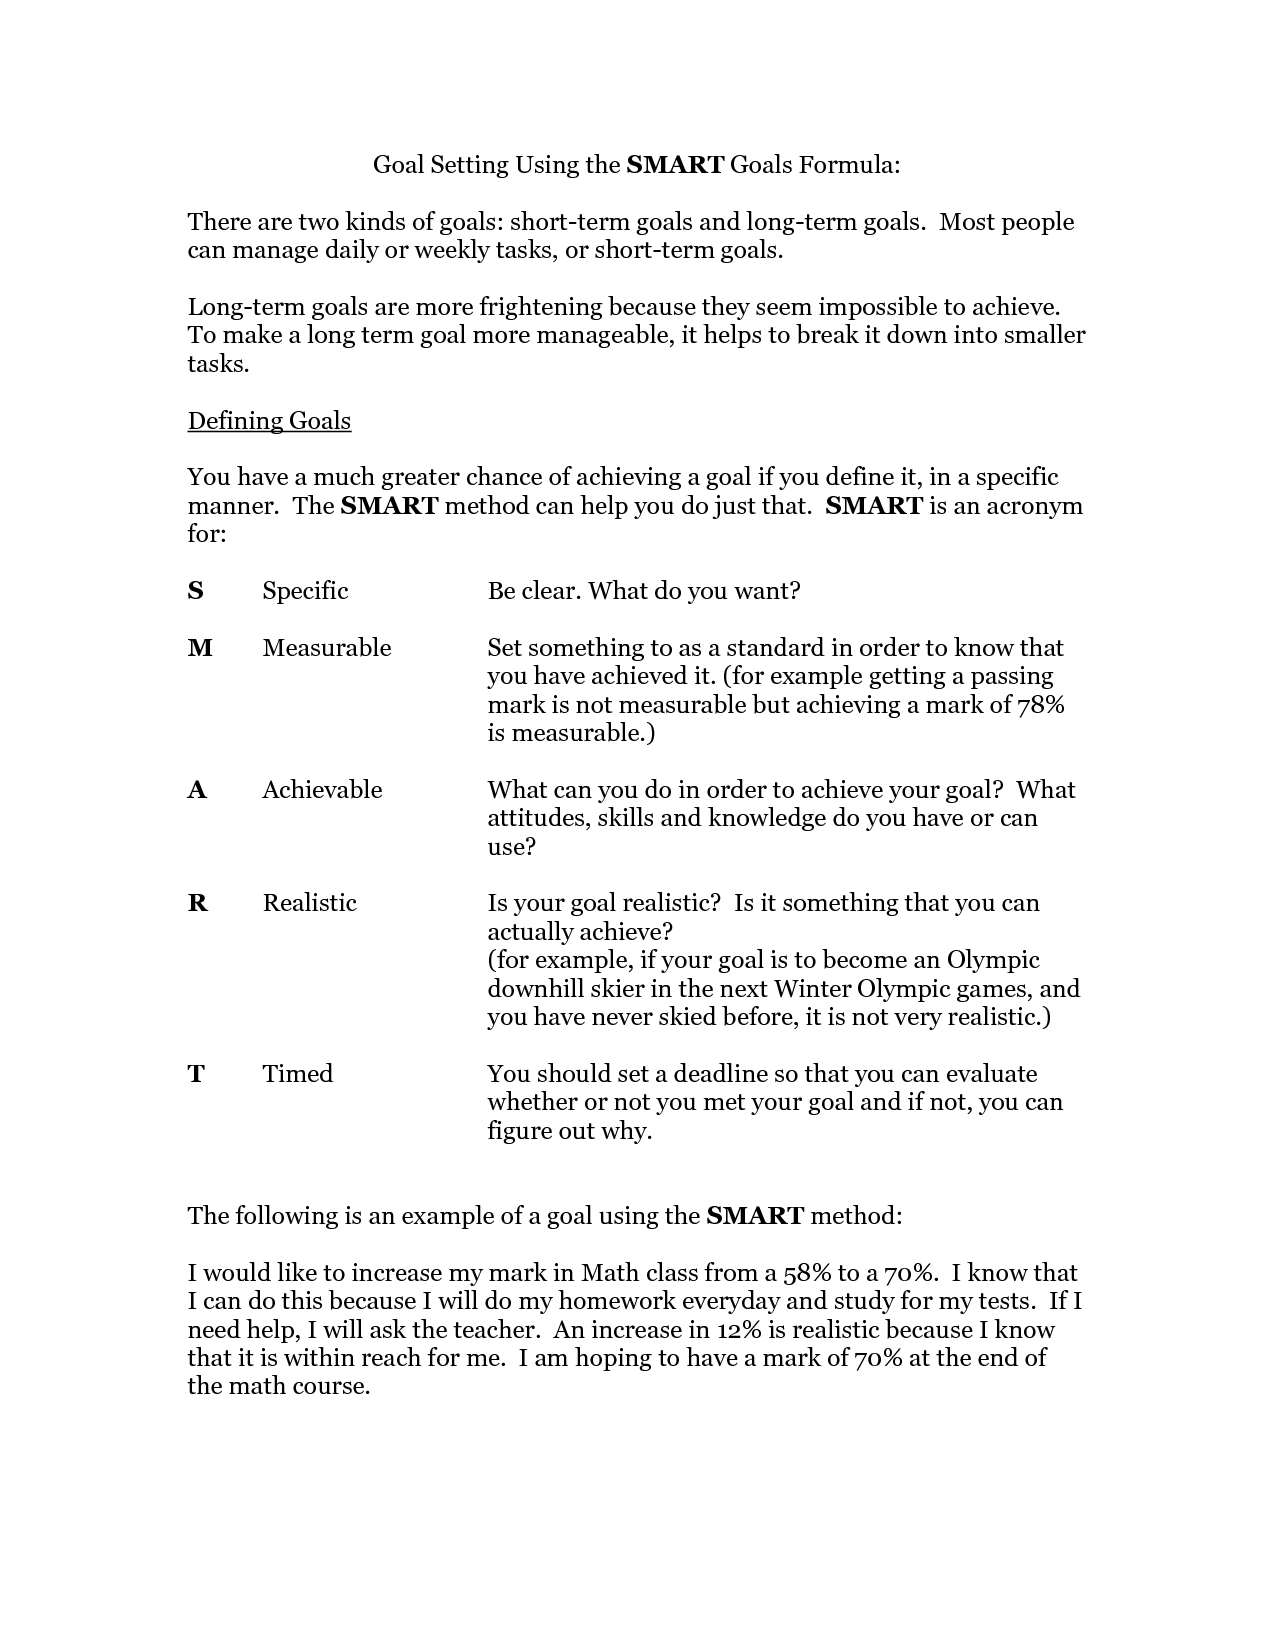 smart goals worksheet goal setting using the smart goals formula goal settings